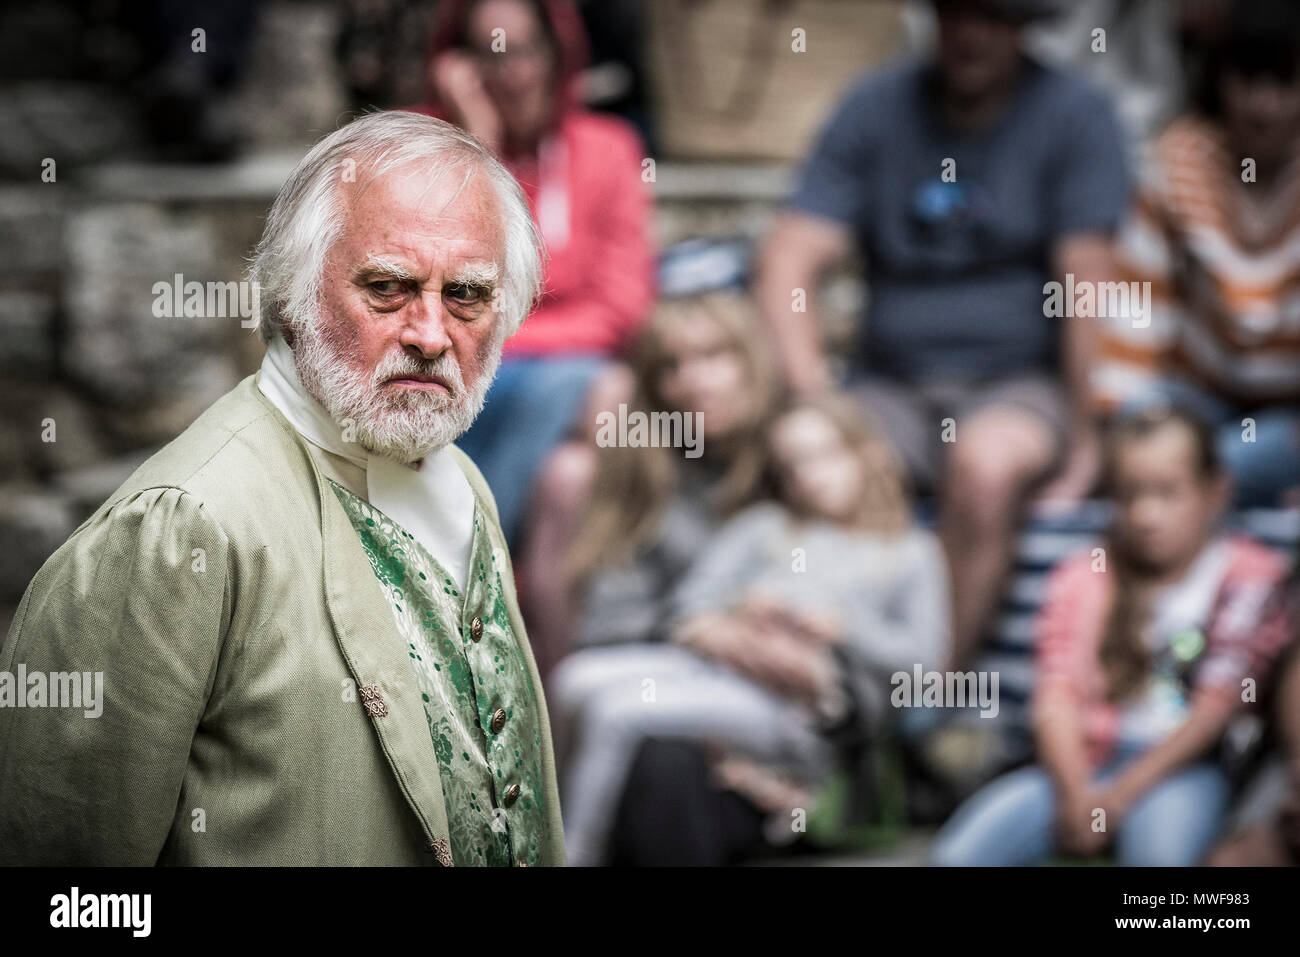 Acting - An amateur drama group in a performance at Trebah Garden Amphitheatre in Cornwall. - Stock Image